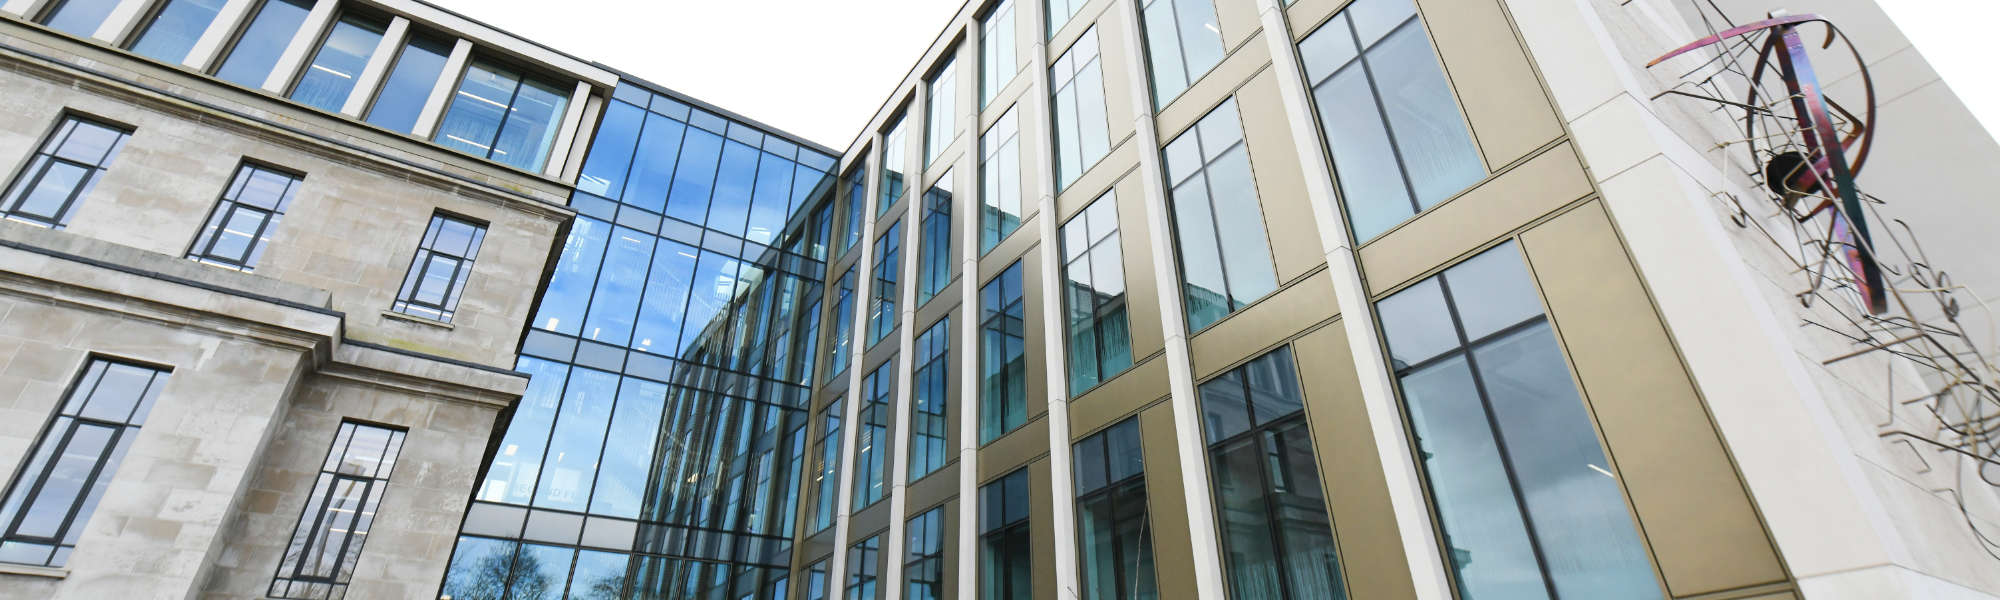 An integrated campus for Engineering and Physical Sciences at the University of Leeds by PCE Ltd